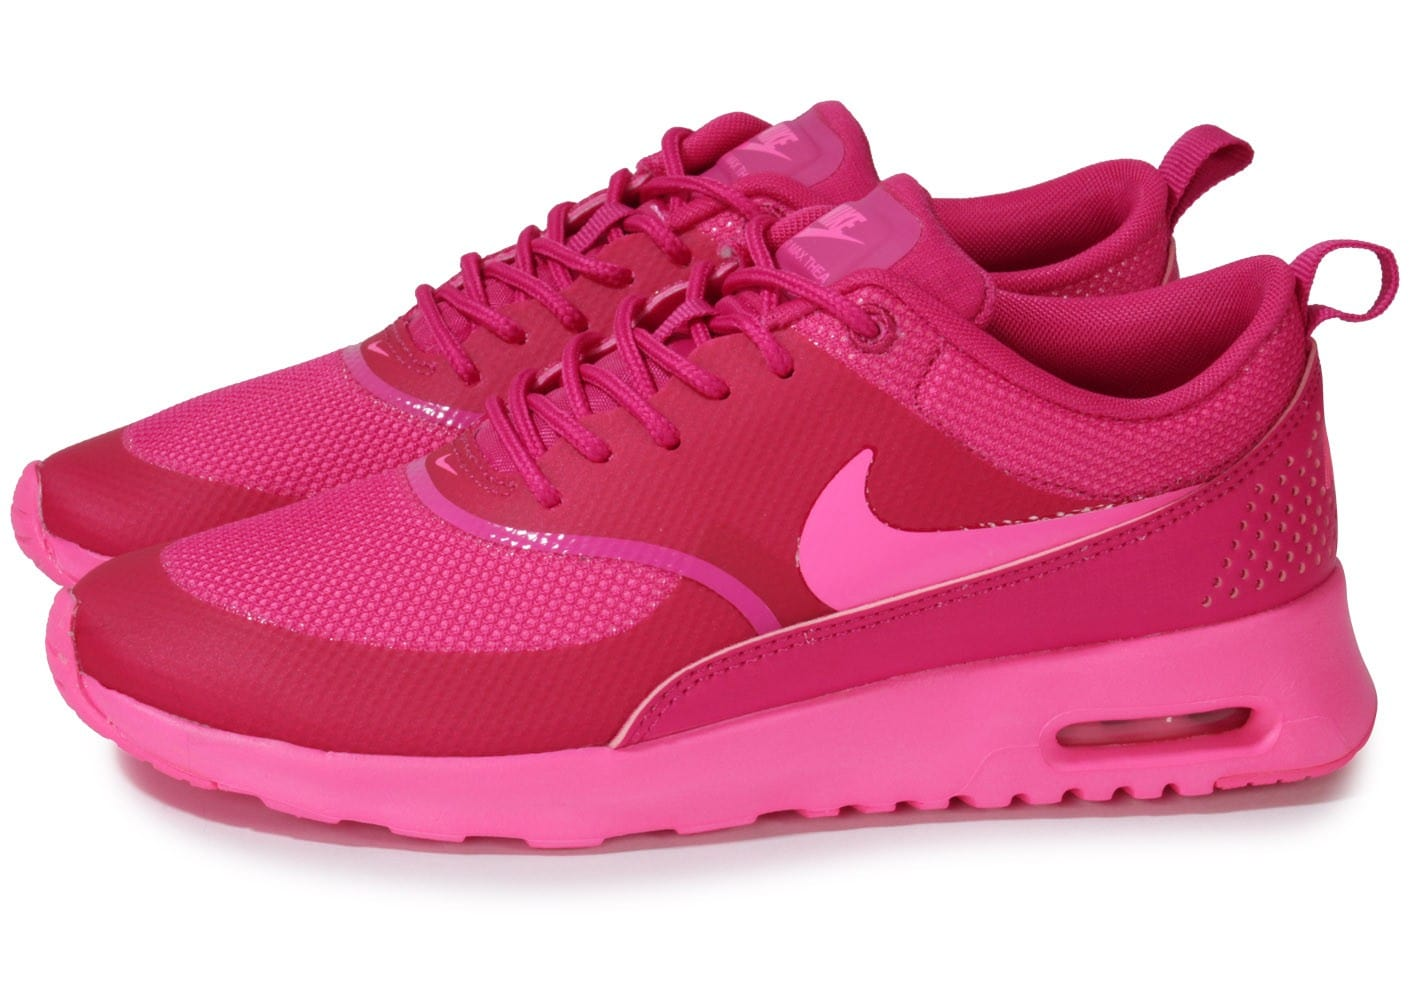 nike thea rose et blanche - Rose Et Blanche